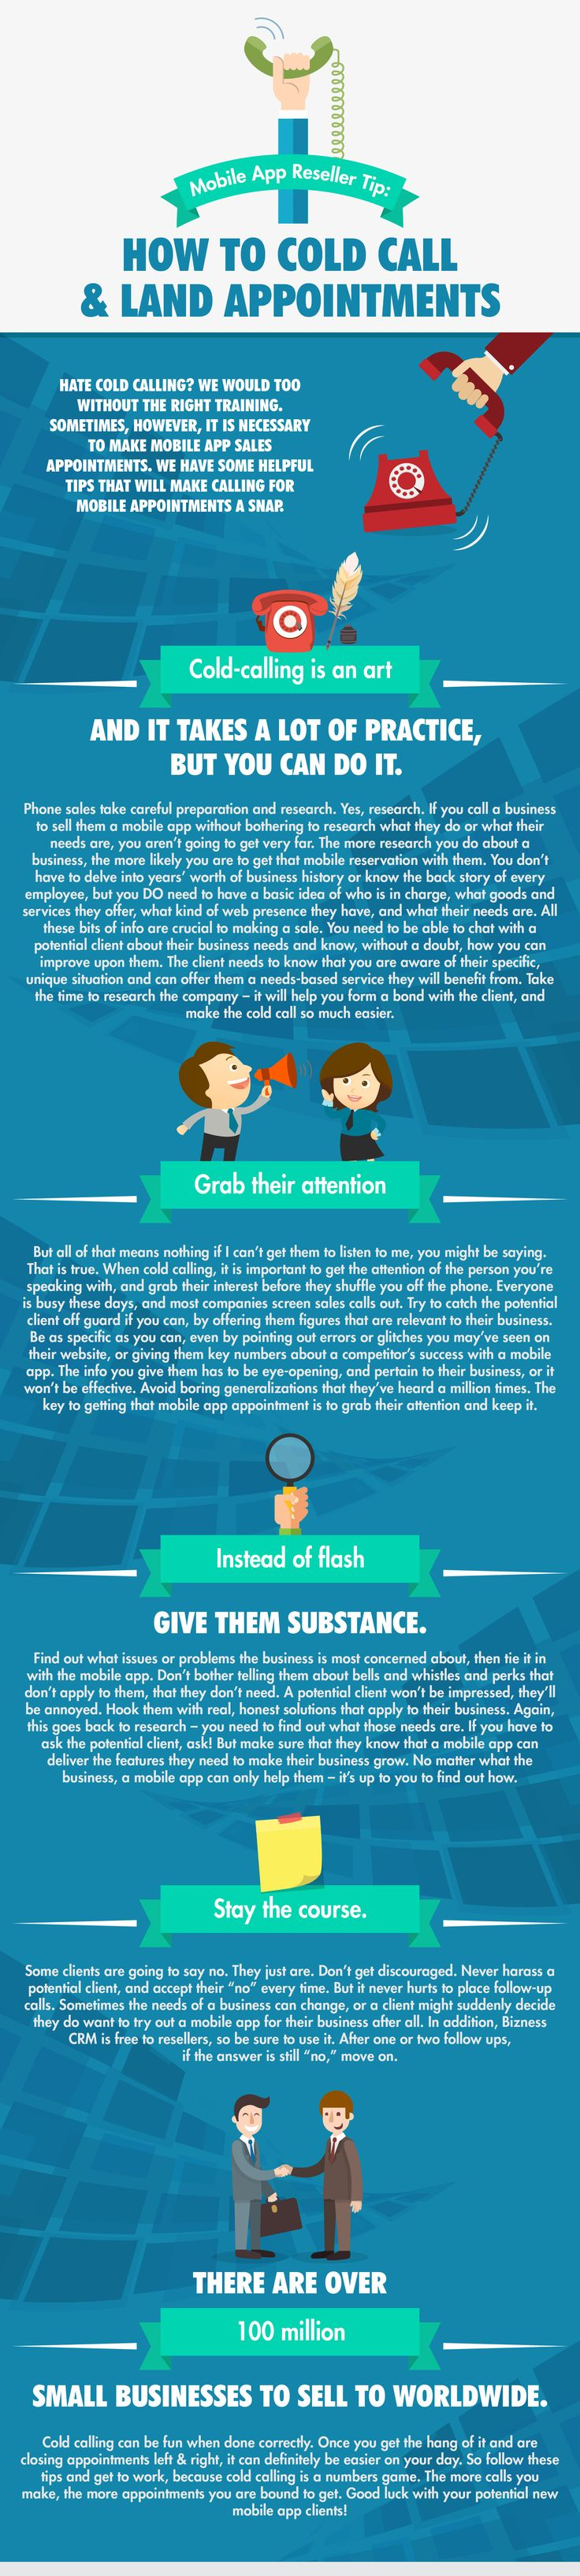 17 best ideas about cold calling s tips s how to cold call and land appointments infographic blog bizness apps